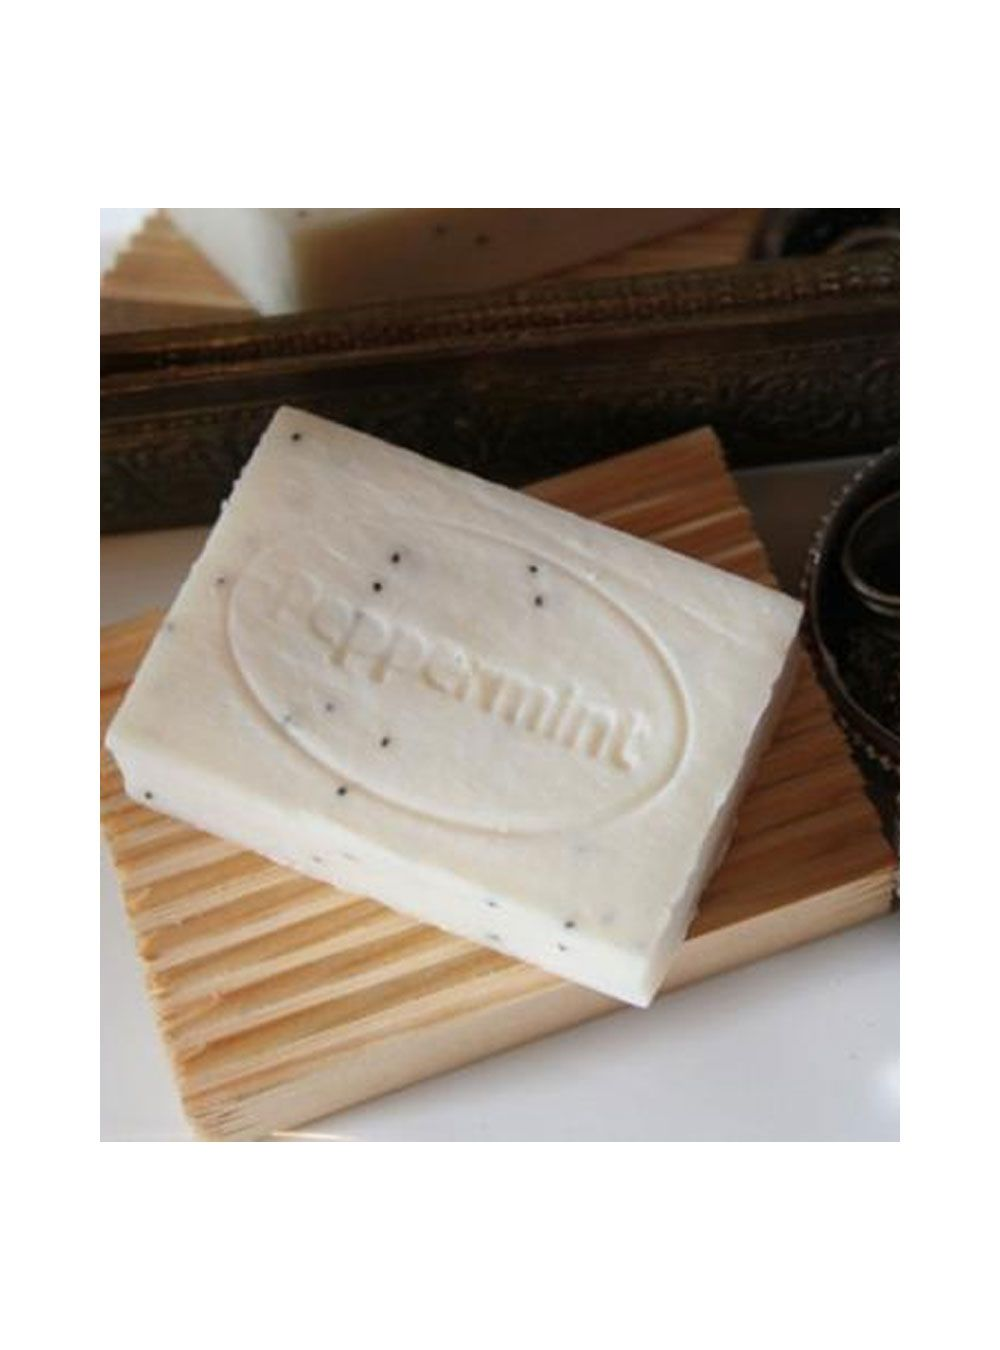 Wholesale Peppermint & Poppyseed Soap bars